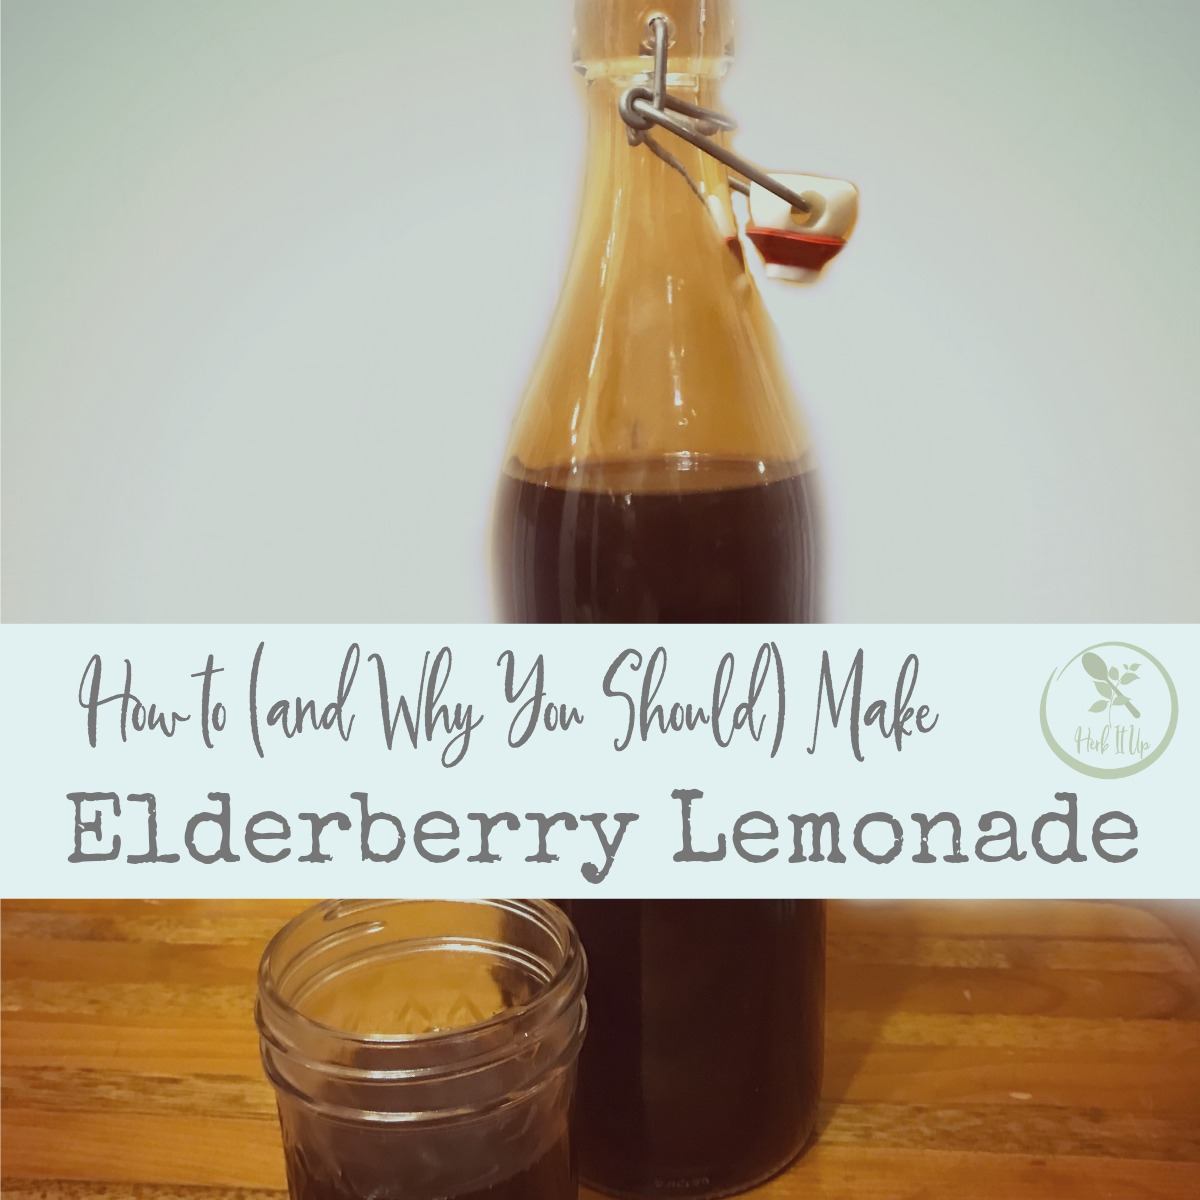 Boost immunity, help avoid the flu or knock it out quickly with this elderberry lemonade.